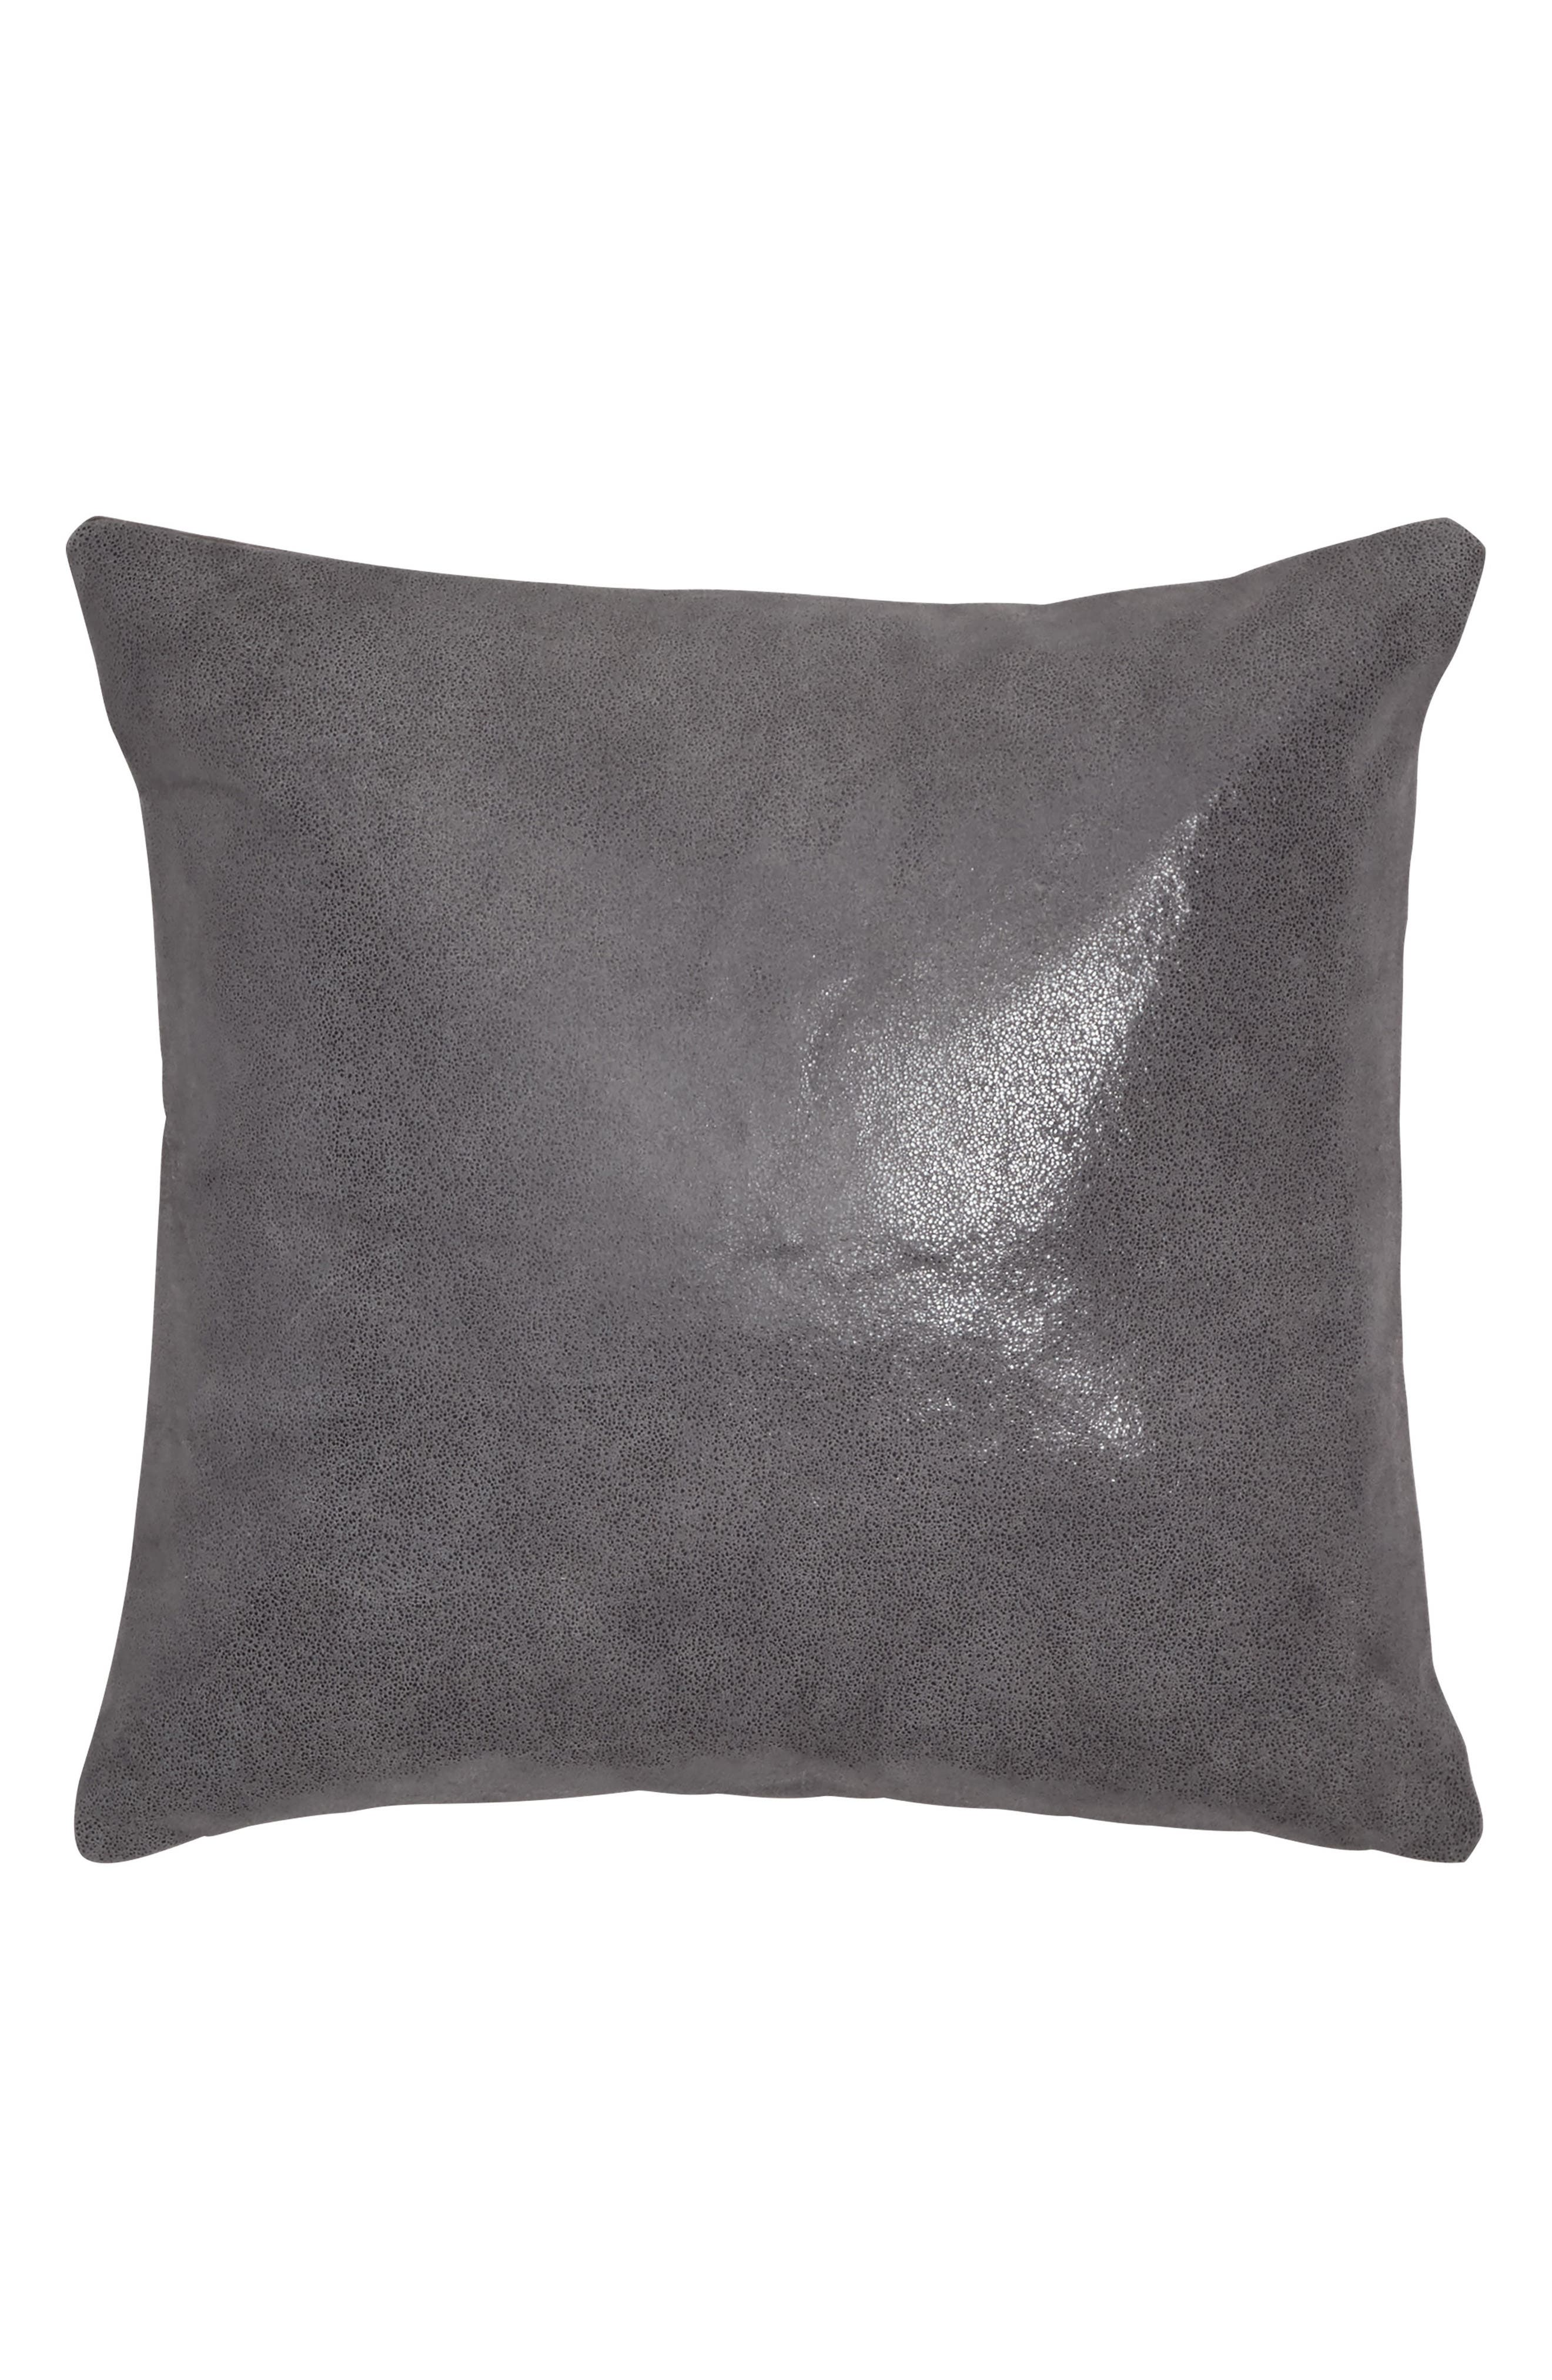 Moonscape Leather Accent Pillow,                         Main,                         color, Charcoal